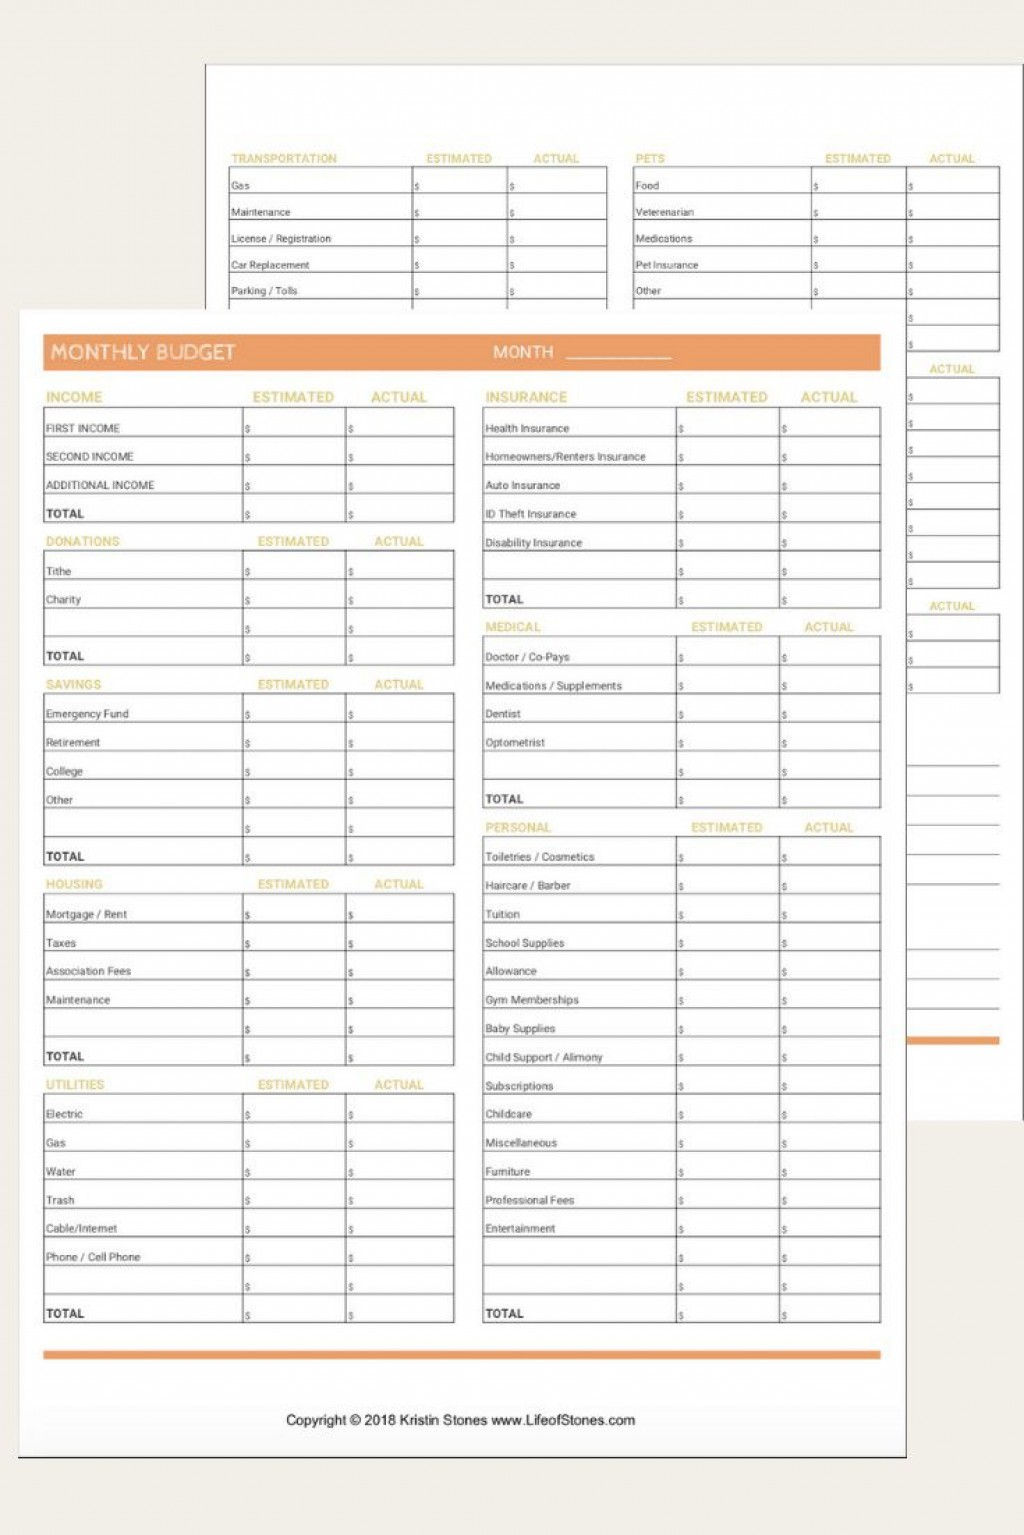 004 Fascinating Free Printable Monthly Budget Form Photo  Forms Personal Template Blank SpreadsheetLarge